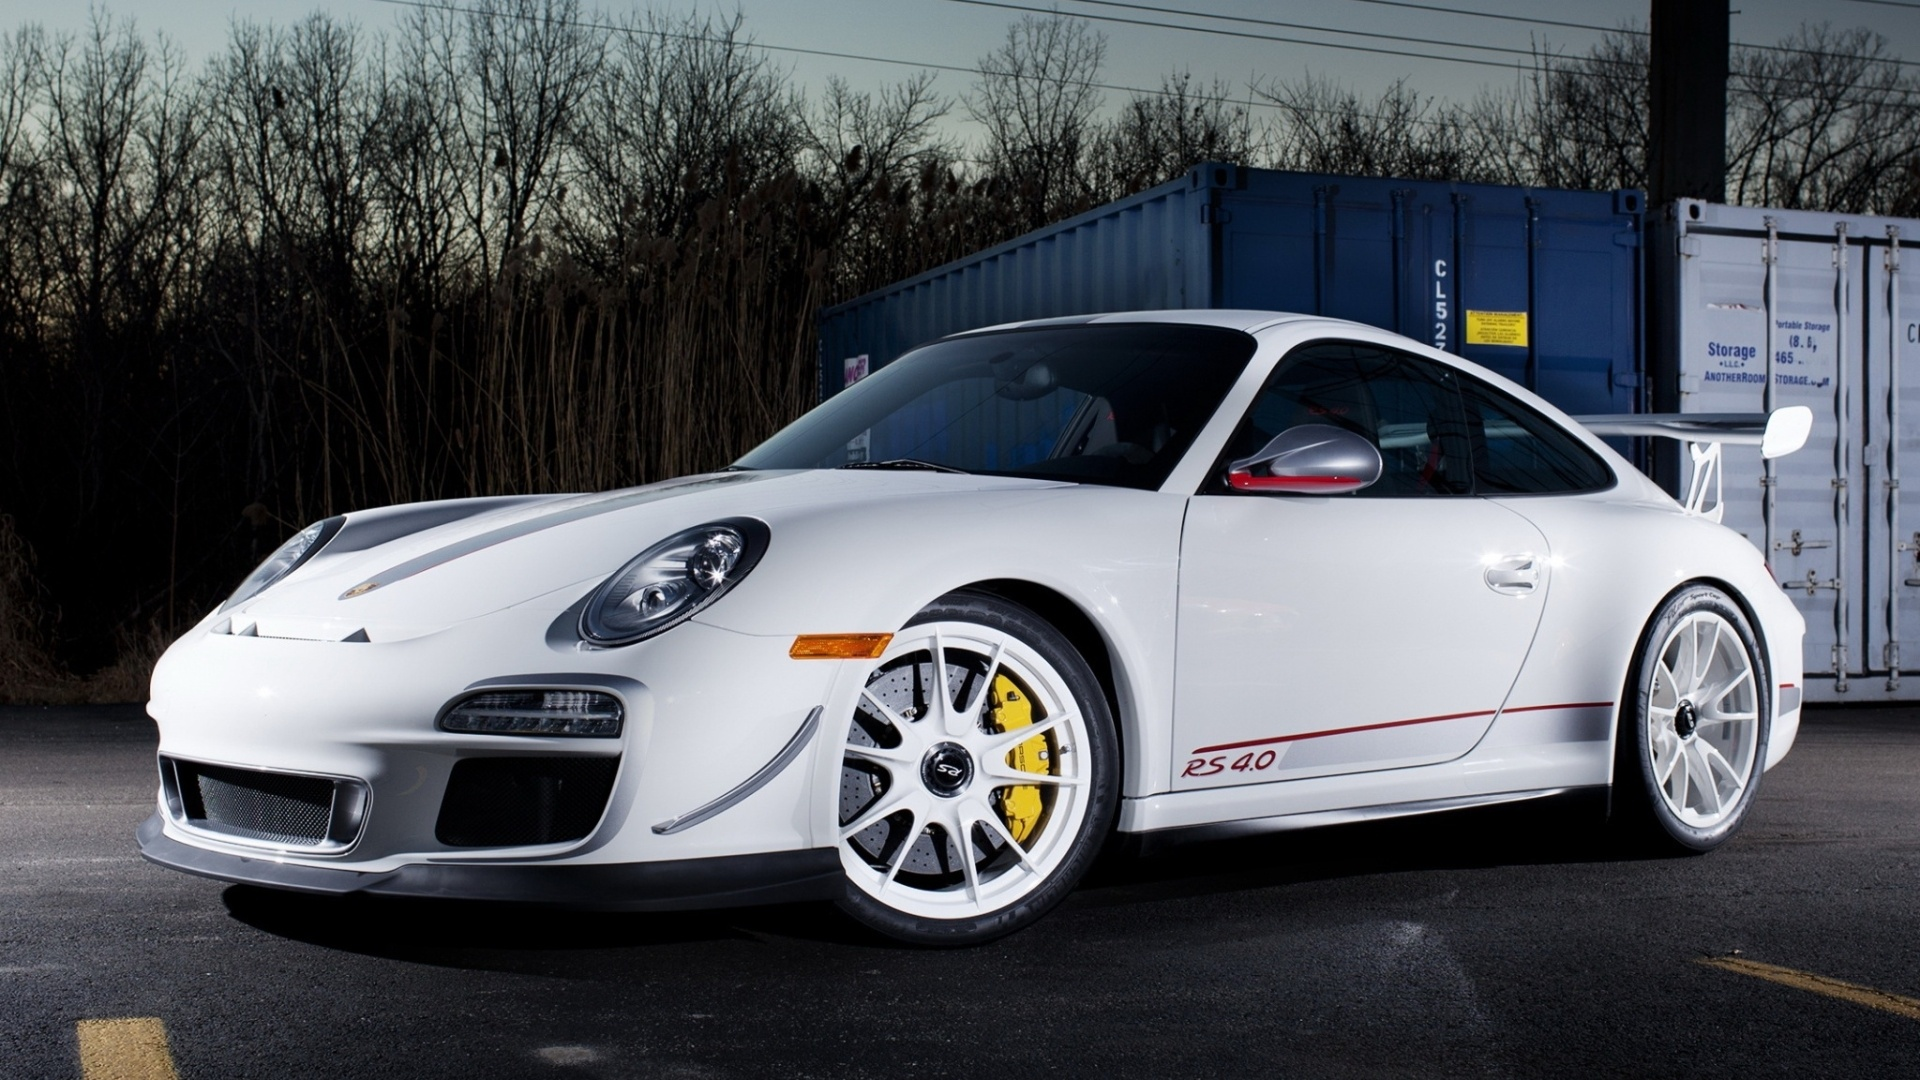 Wallpaper Porsche 911 GT3 RS 4.0 White Color 1920x1200 HD